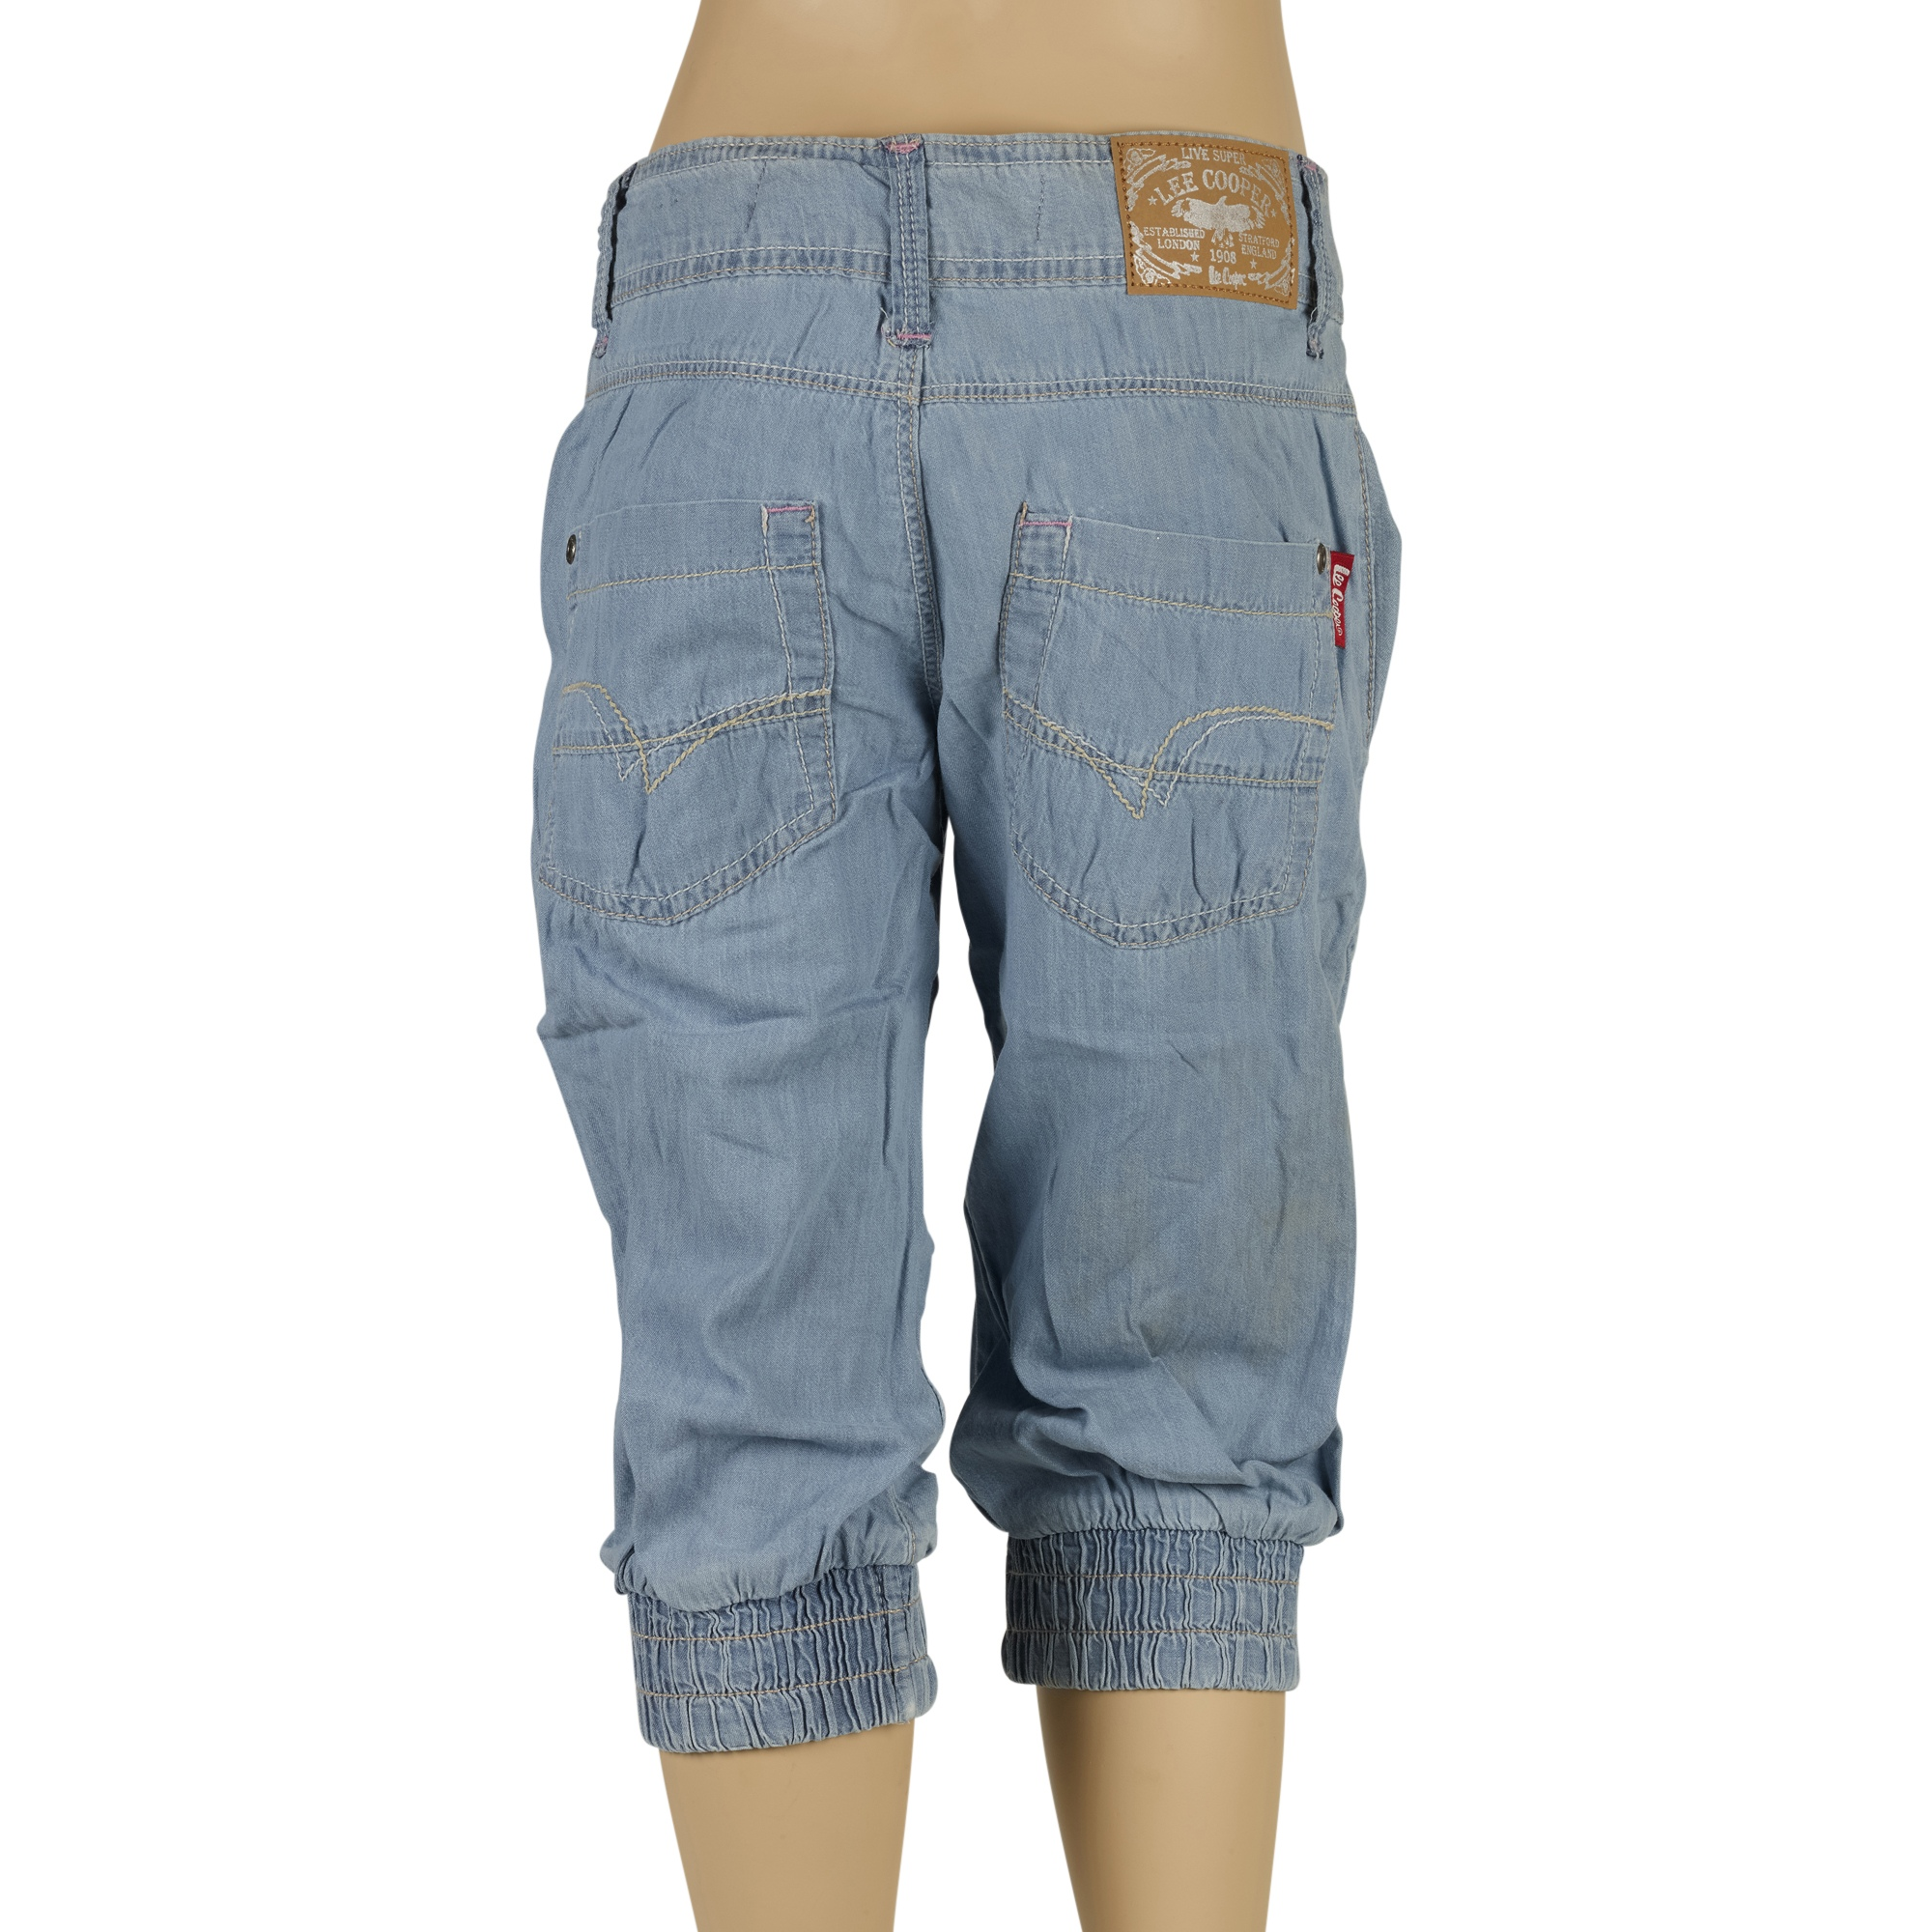 8df85be6 Girls Lee Cooper Designer Denim Jeans Casual Fashion Trousers Pants ...